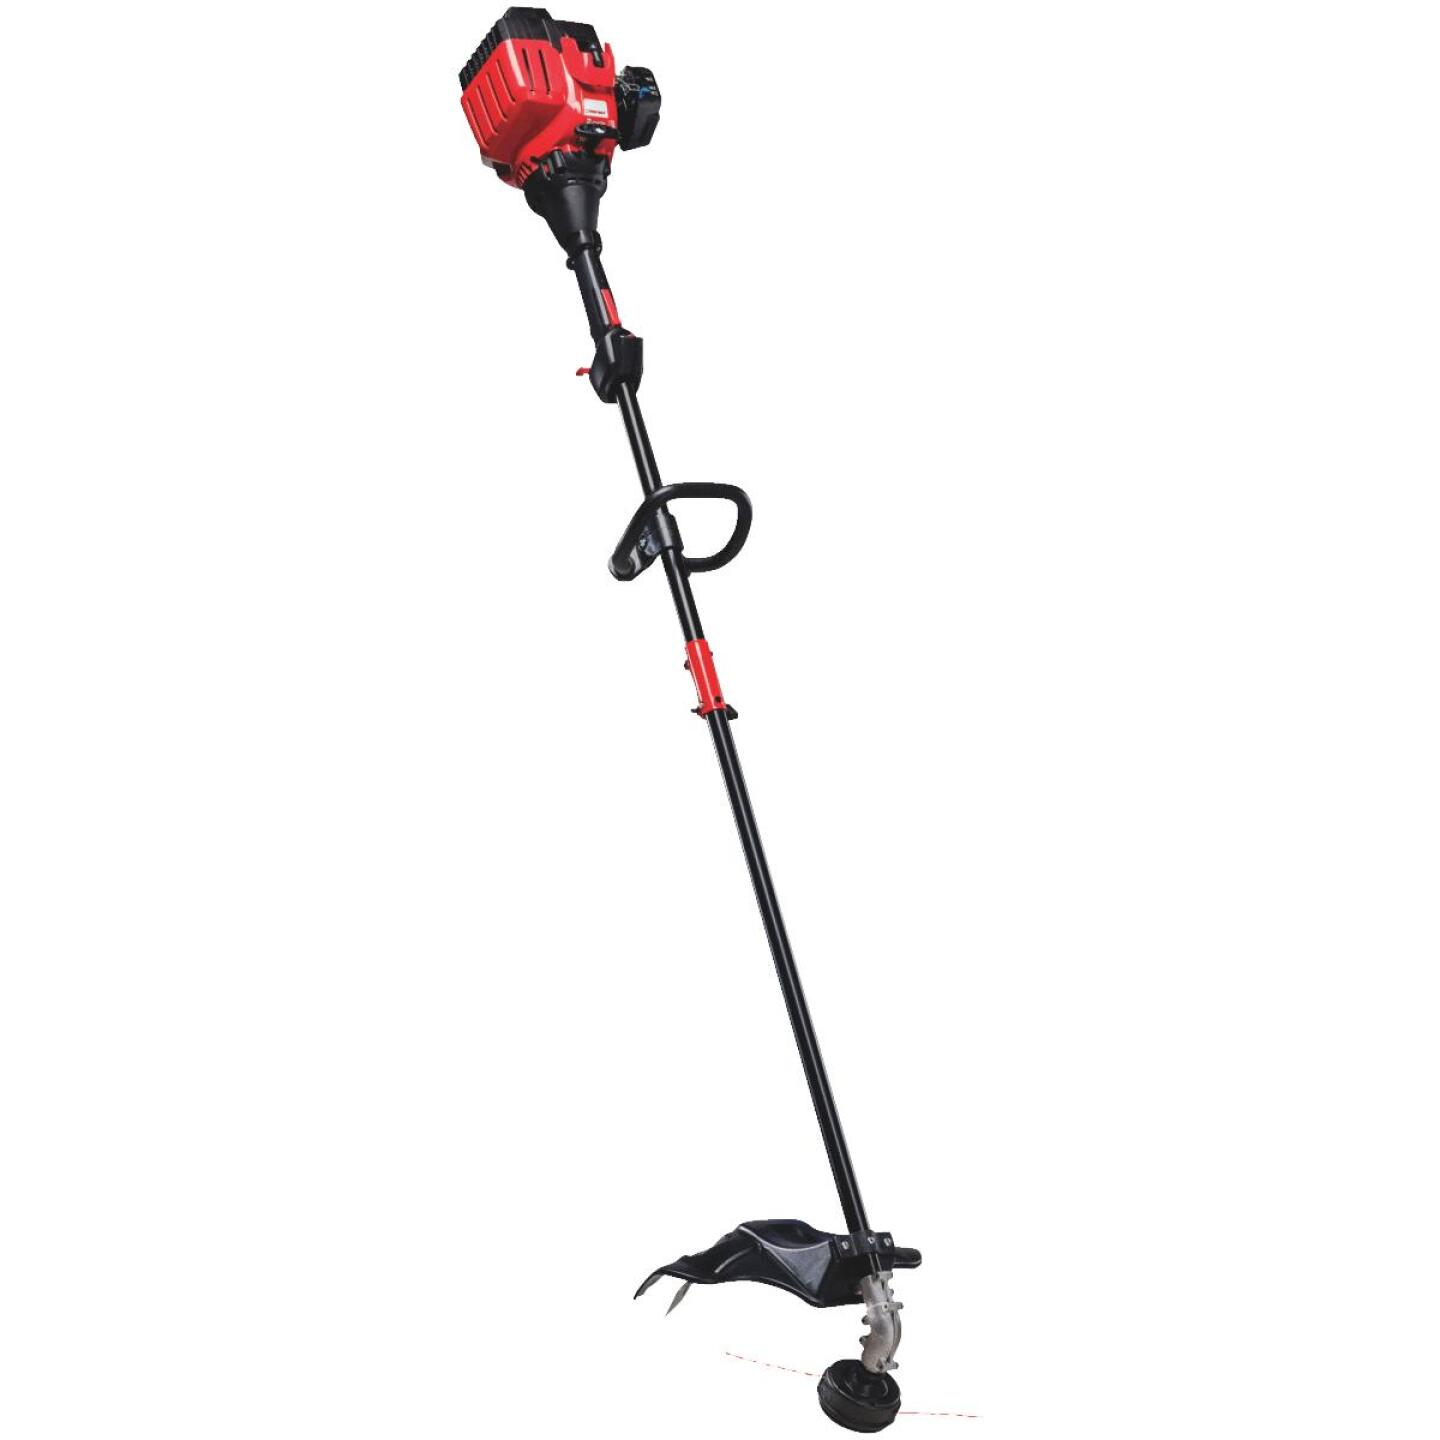 Troy-Bilt TB252S 25cc 2-Cycle Straight Shaft Gas Trimmer Image 1